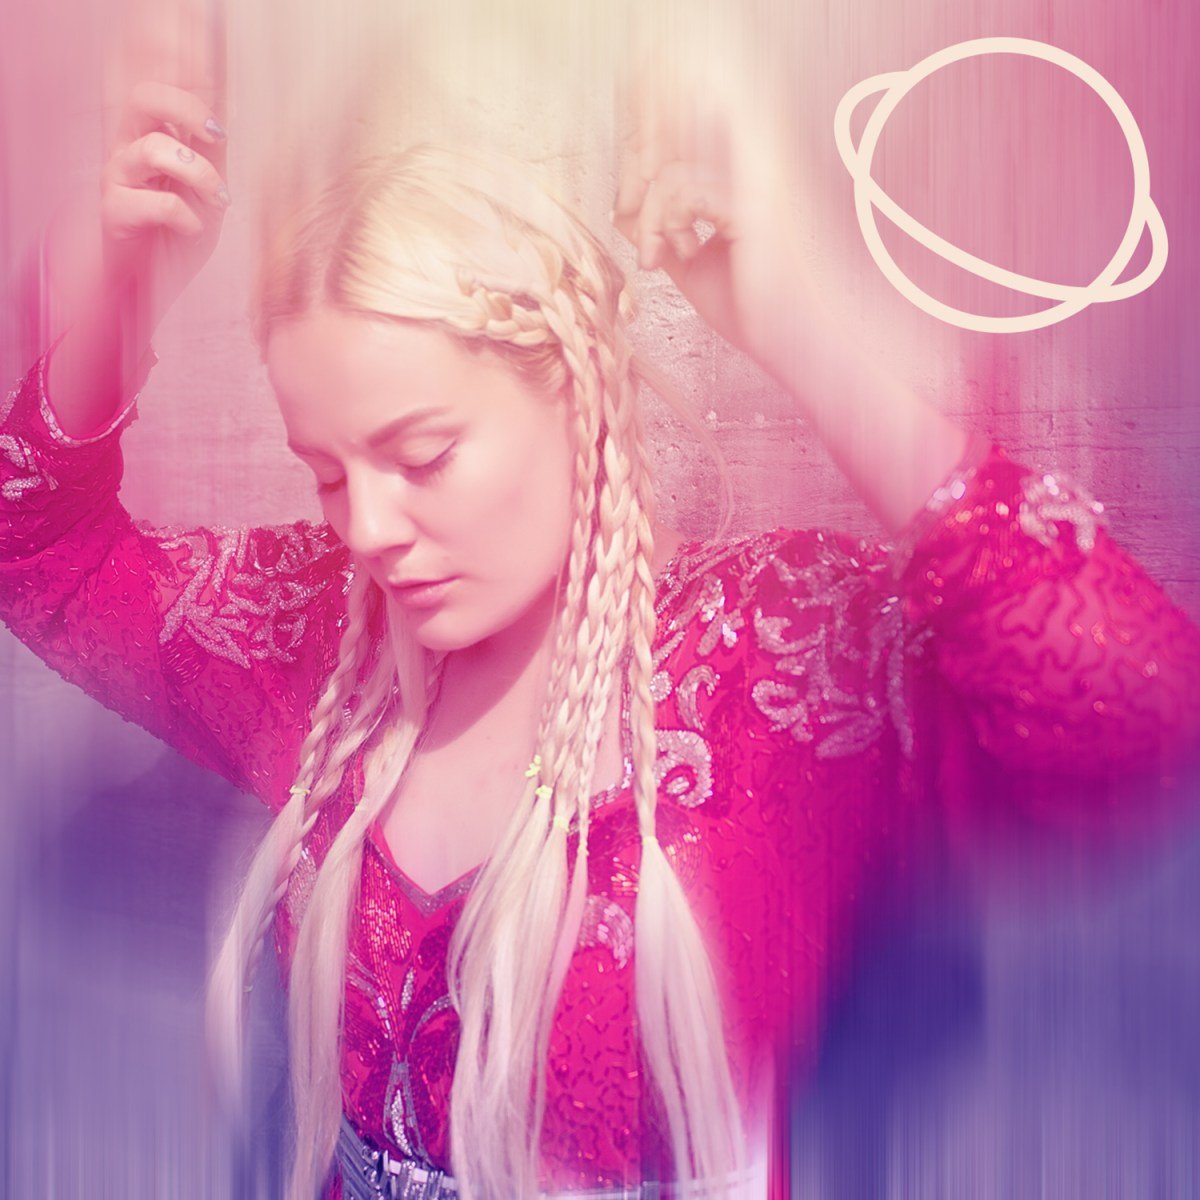 Promising Pop: Maja Francis - Last Days Of Dancing